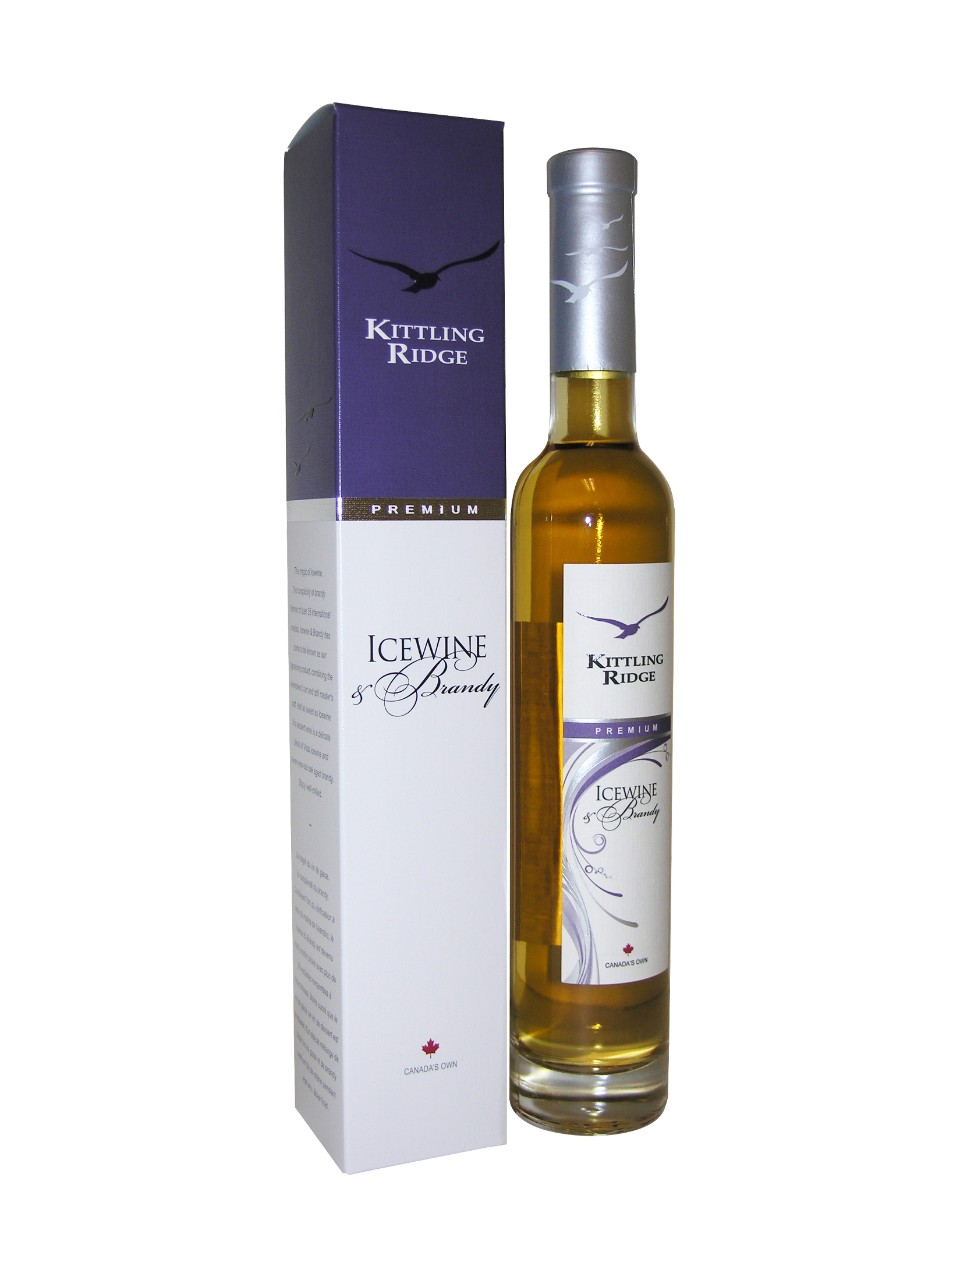 Vin de glace et Brandy Kittling Ridge